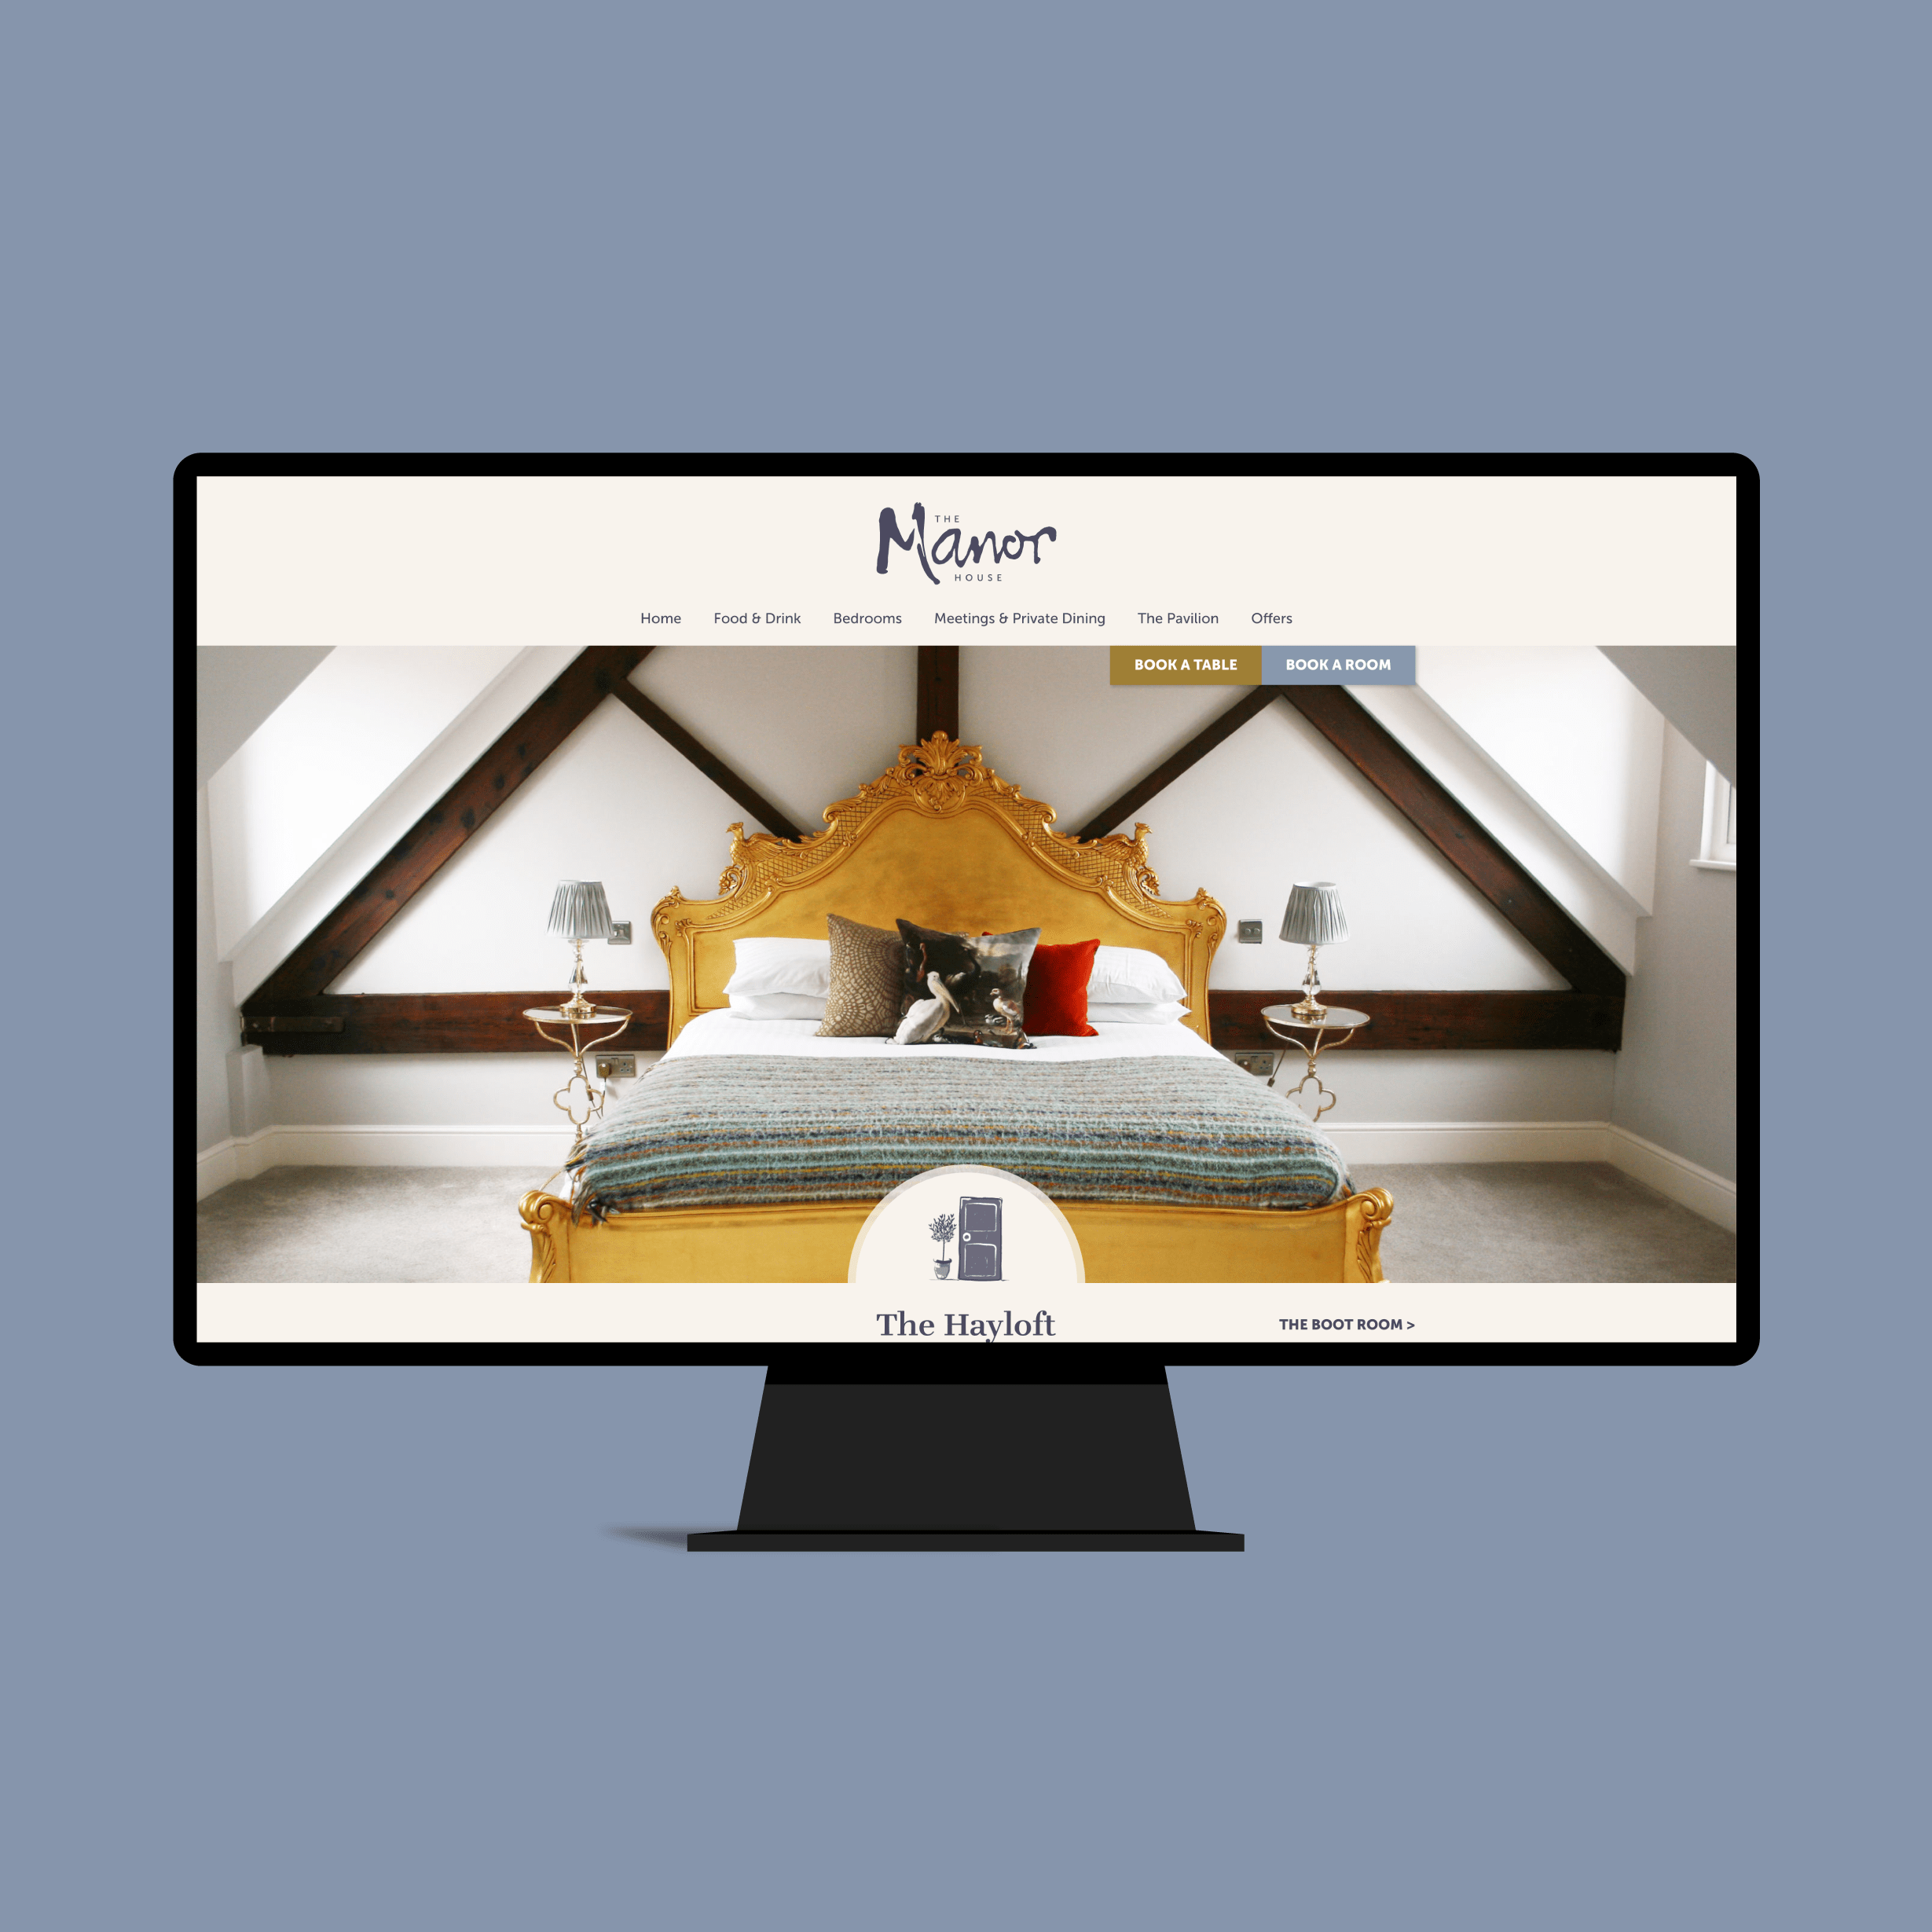 Website design for The Manor House restaurant with rooms in Quorn - showcasing the Hayloft room.